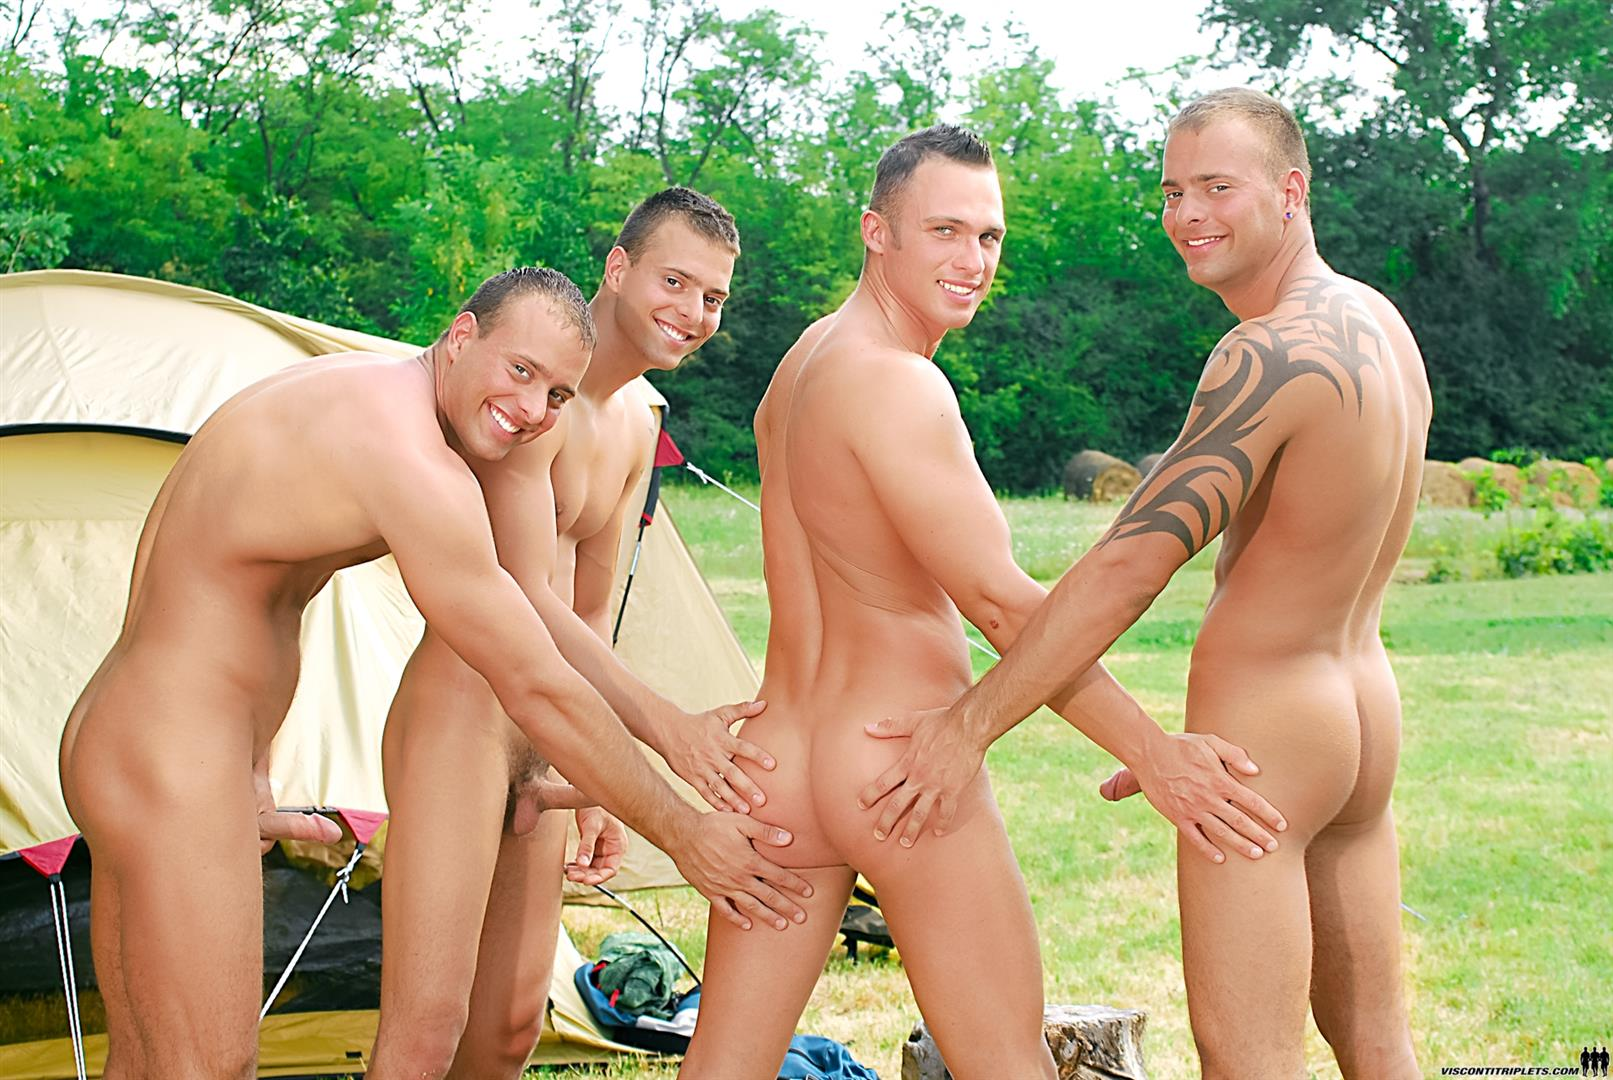 from Waylon gay porn while camping